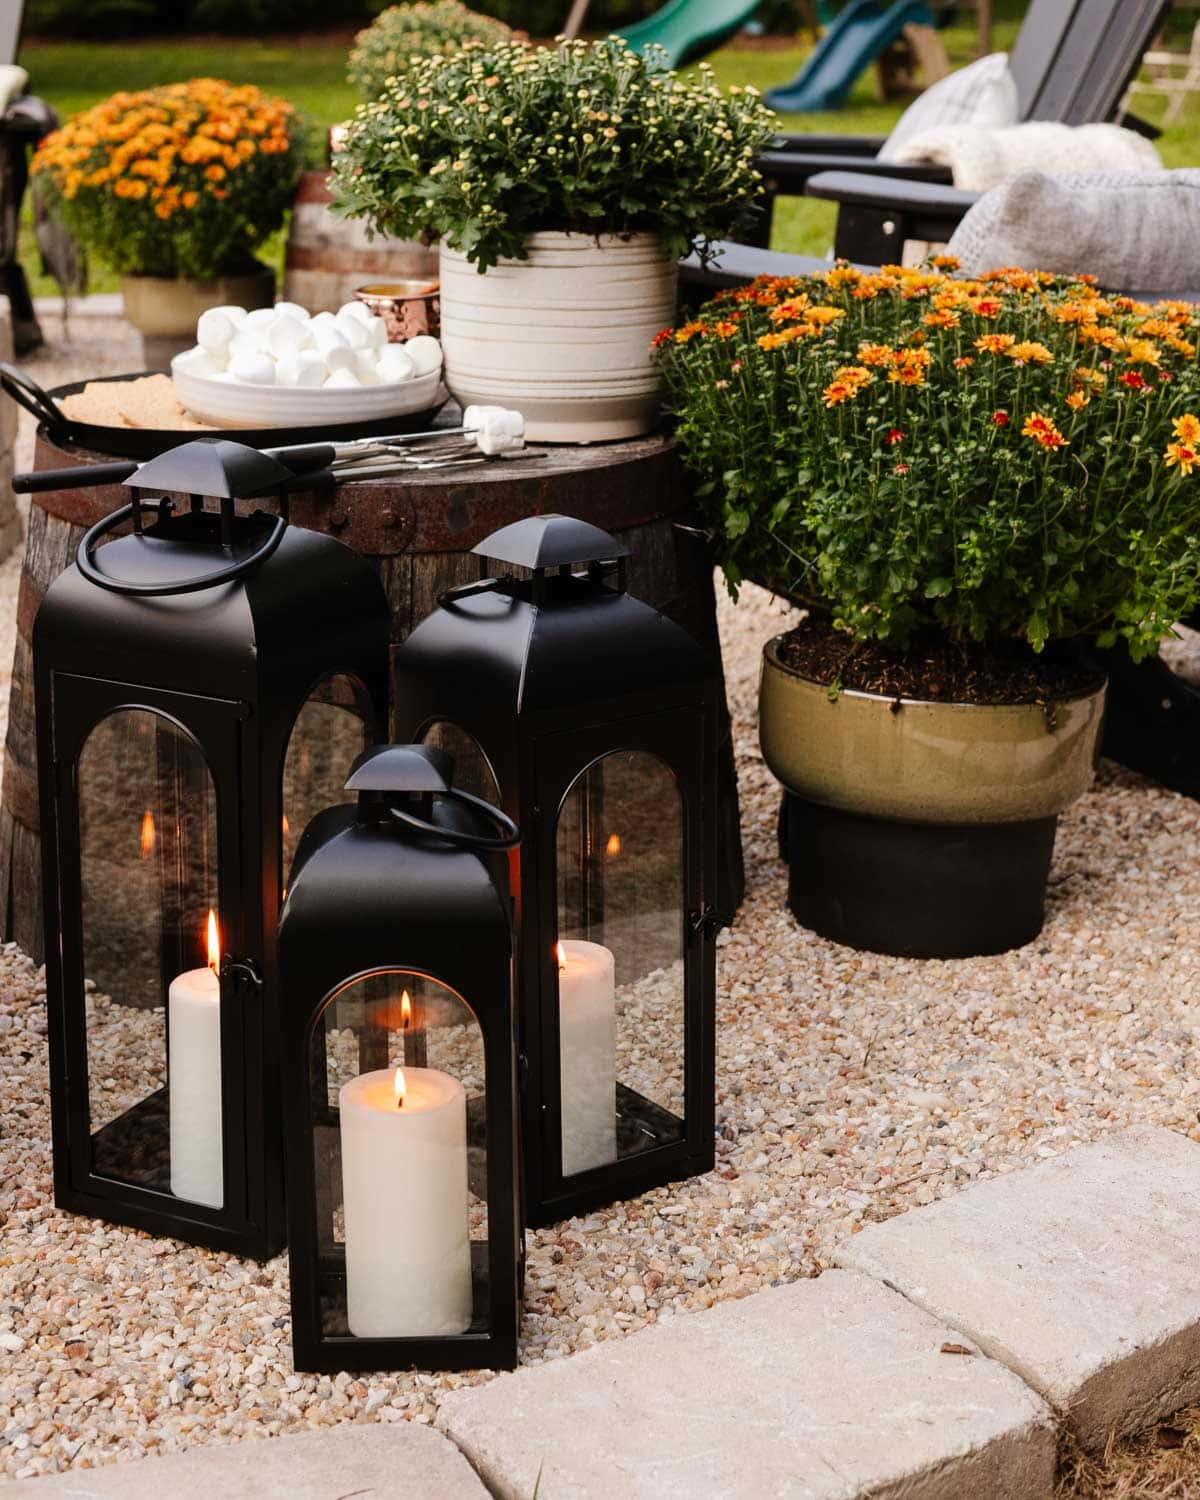 fire pit ideas - add lanterns for candlelight